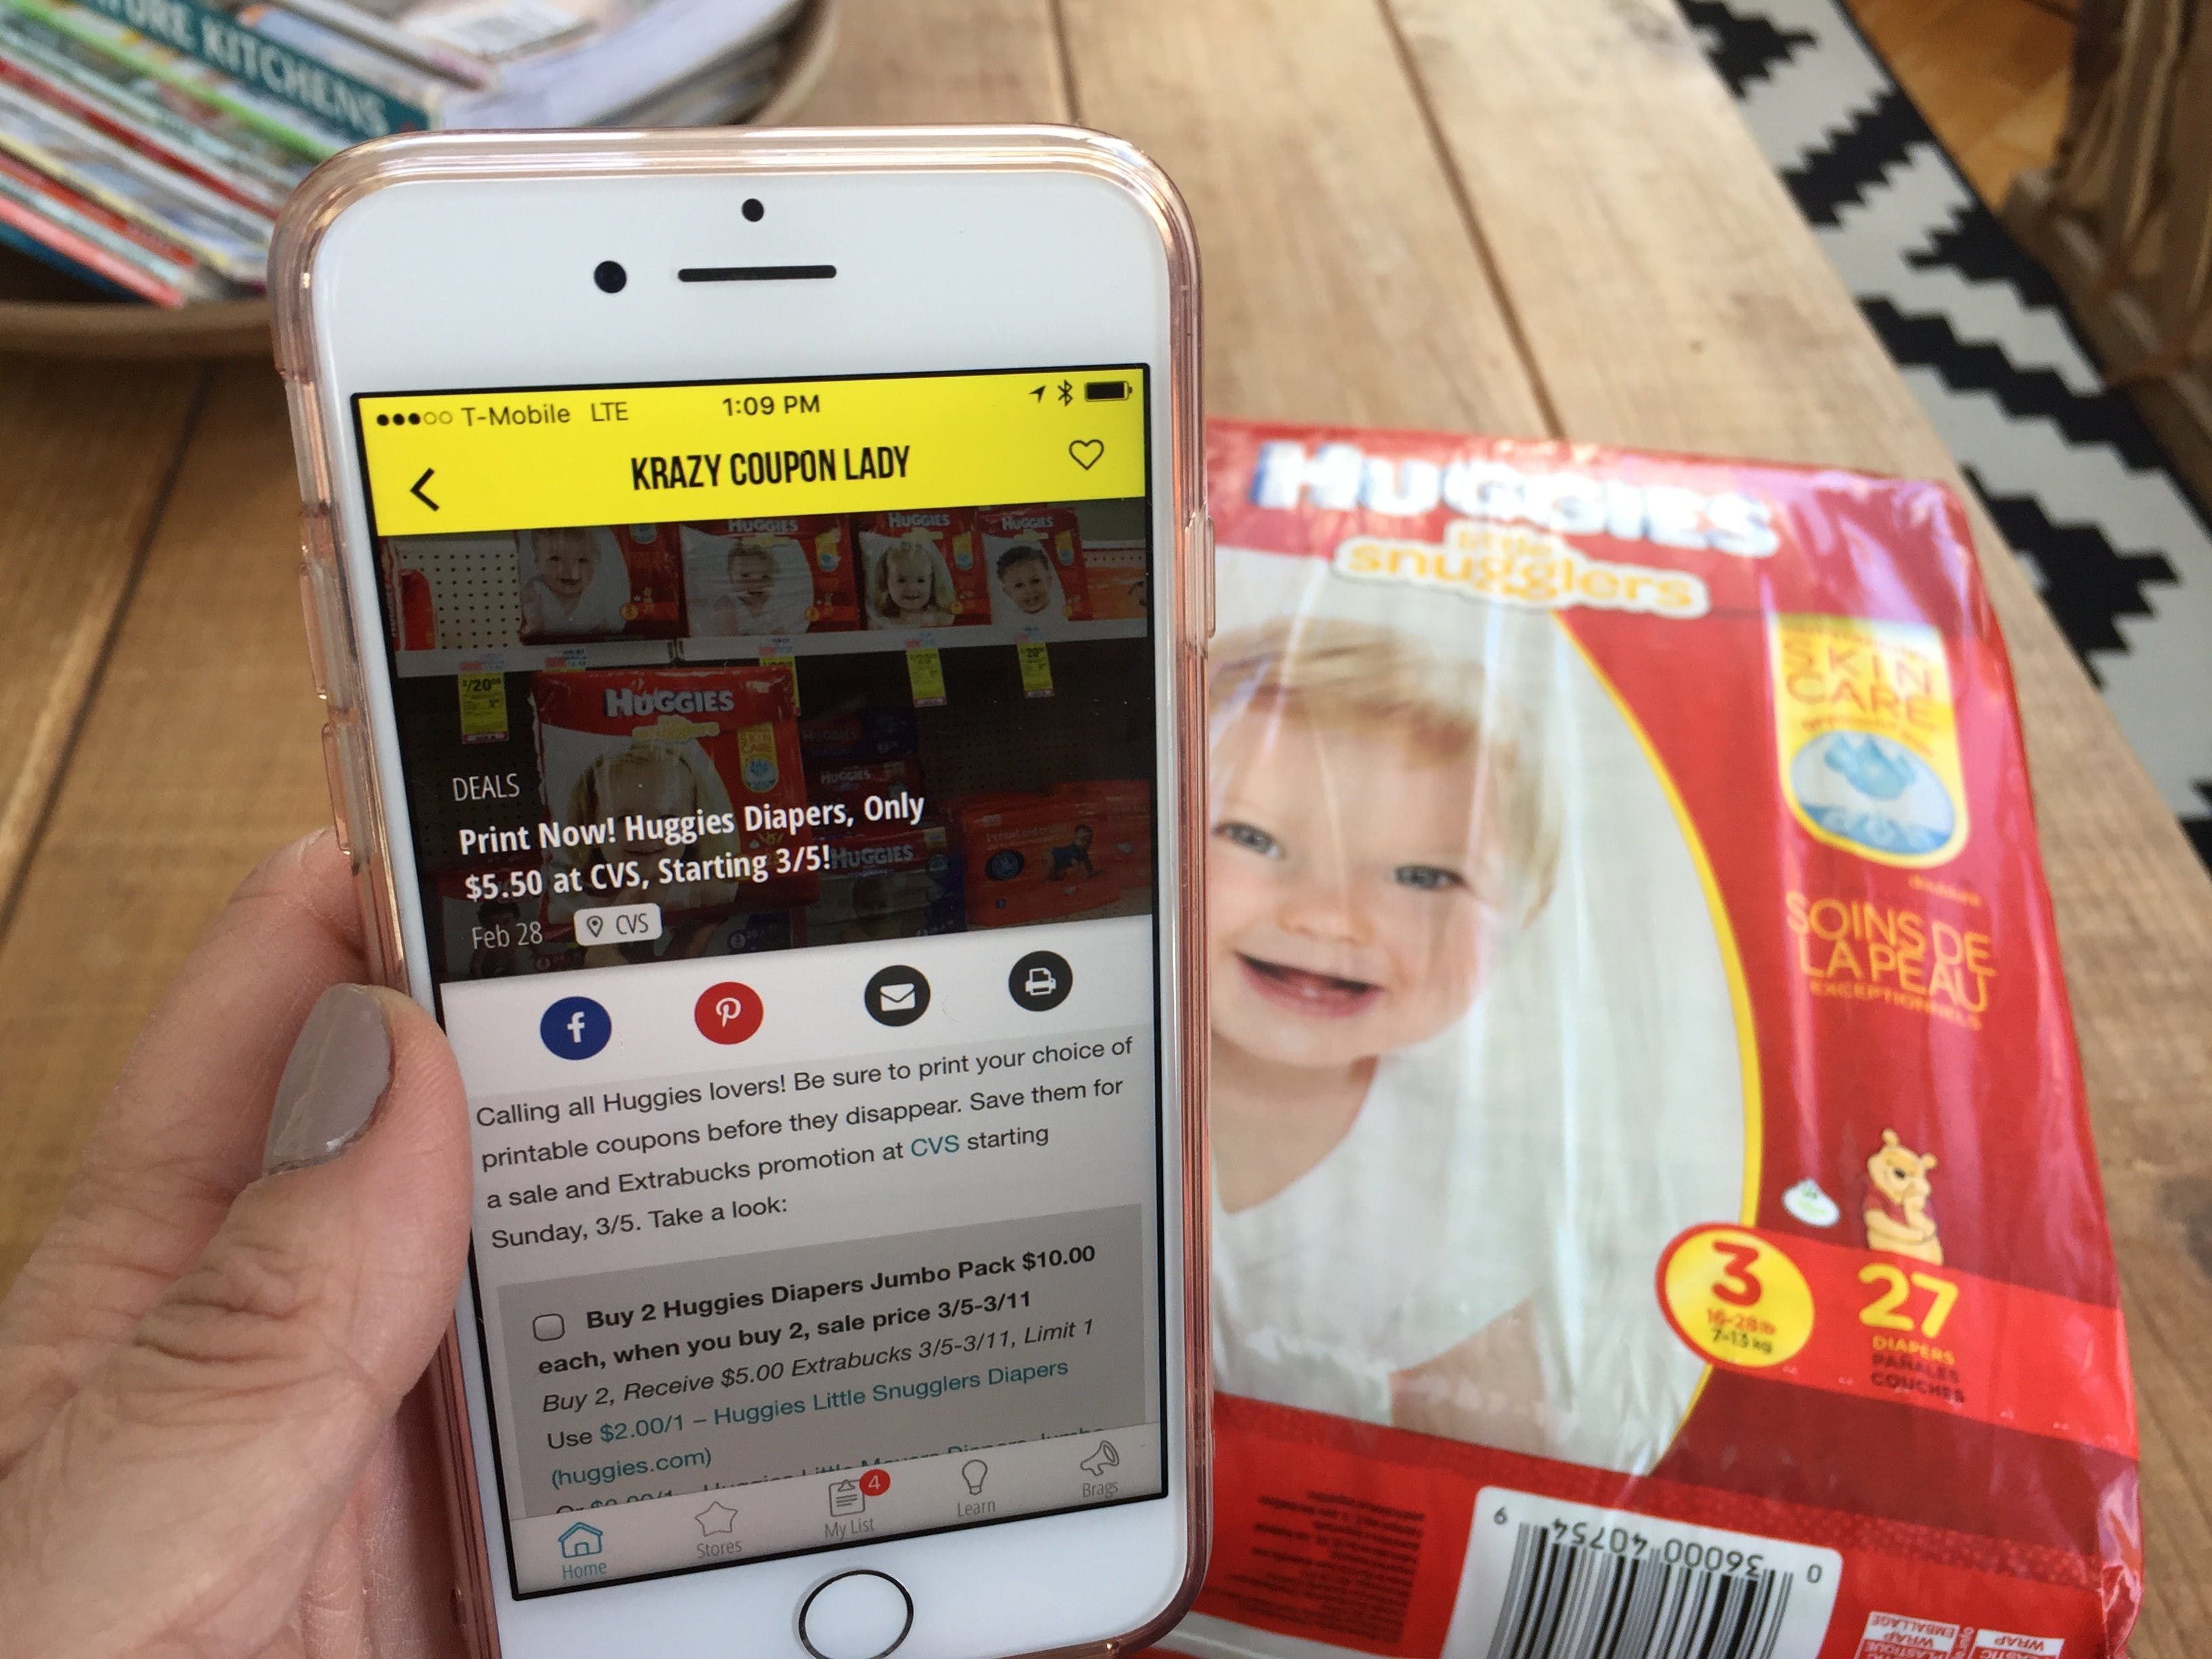 12 Easy Ways You Can Get Free Diapers The Krazy Coupon Lady